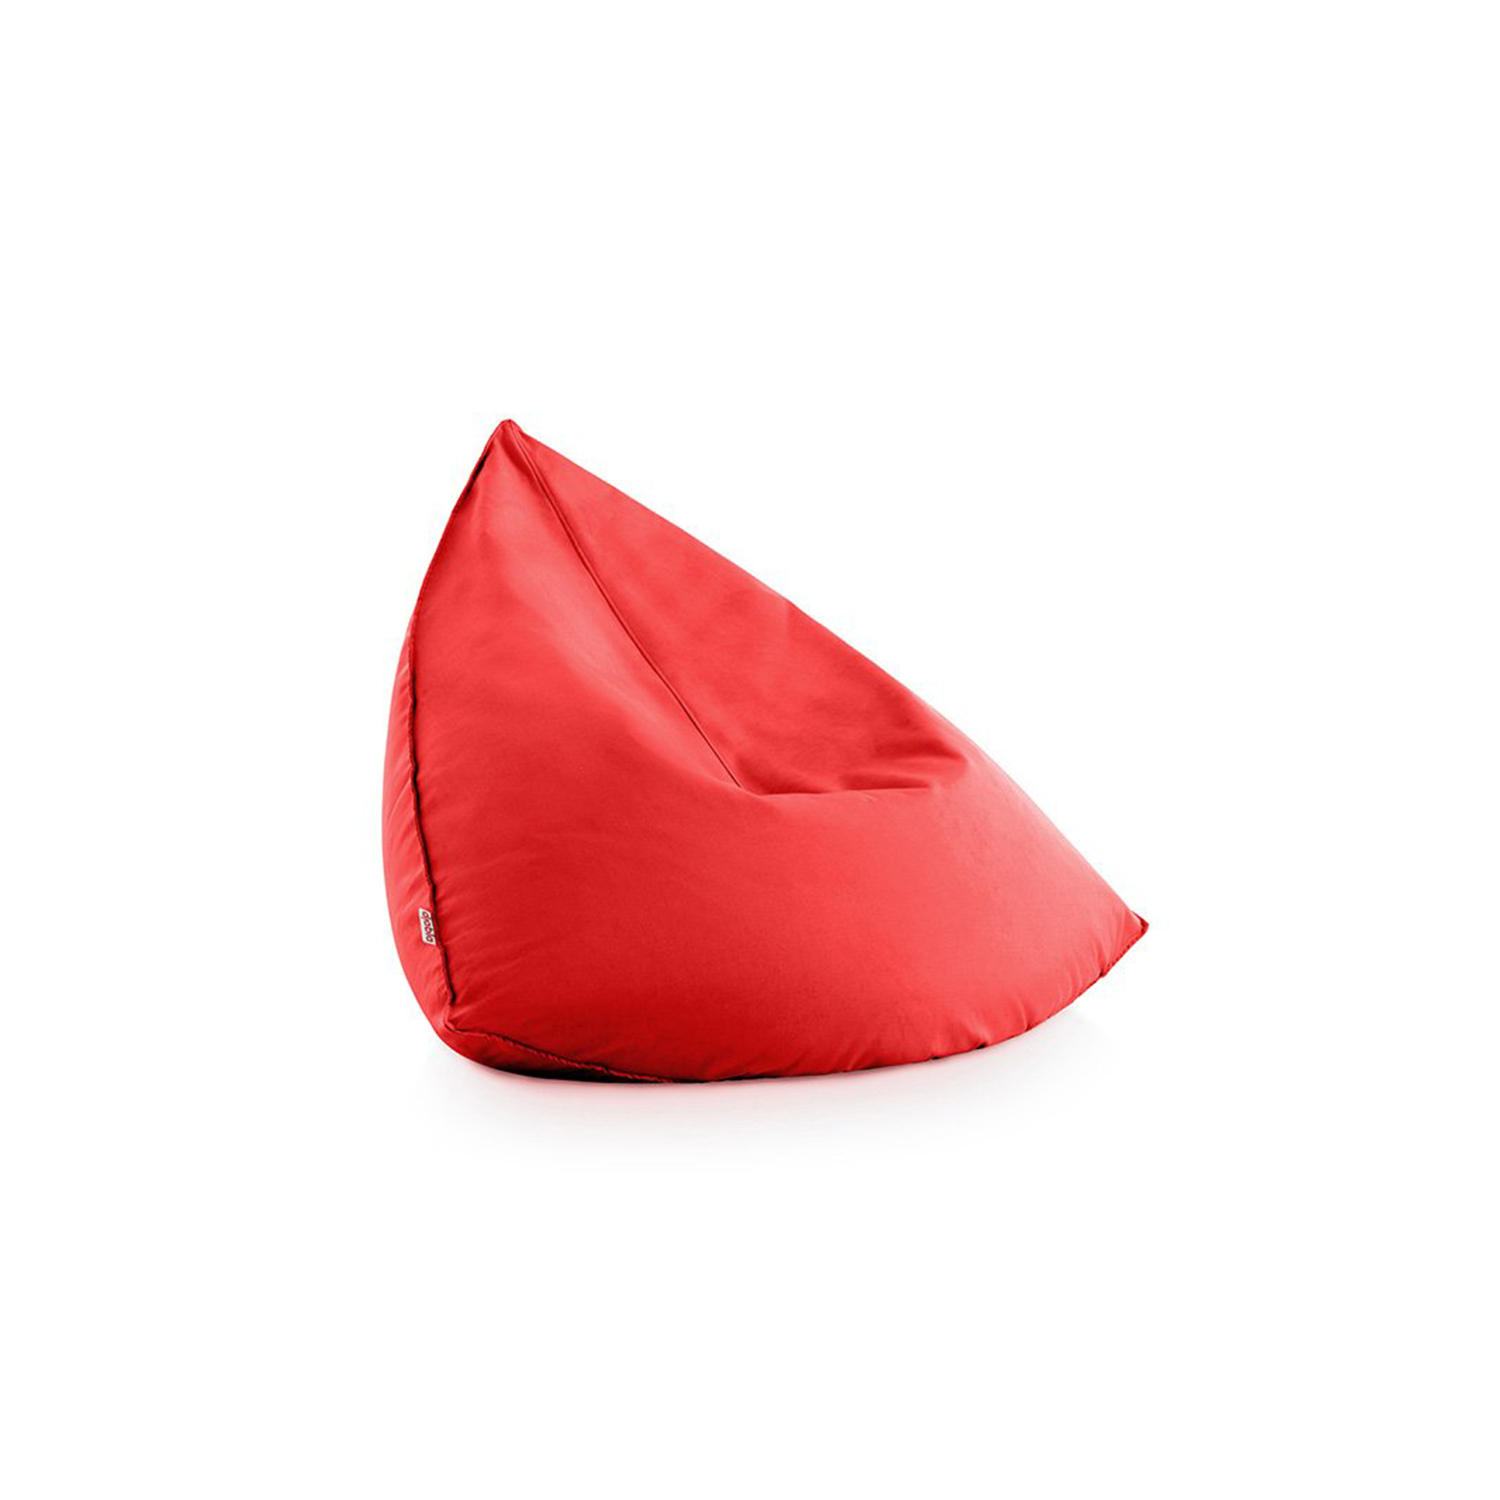 Sail Pouf - Let yourself be seduced by our most loving outdoor chair. Sitting in Sail is like enjoying a lovely hug, as the whole of the inside of the chair moulds to your body. This is because of its soft cushioning made from polystyrene beads that move around and intuitively adapt to the human figure. An informal seat for relaxed, laid-back atmospheres.